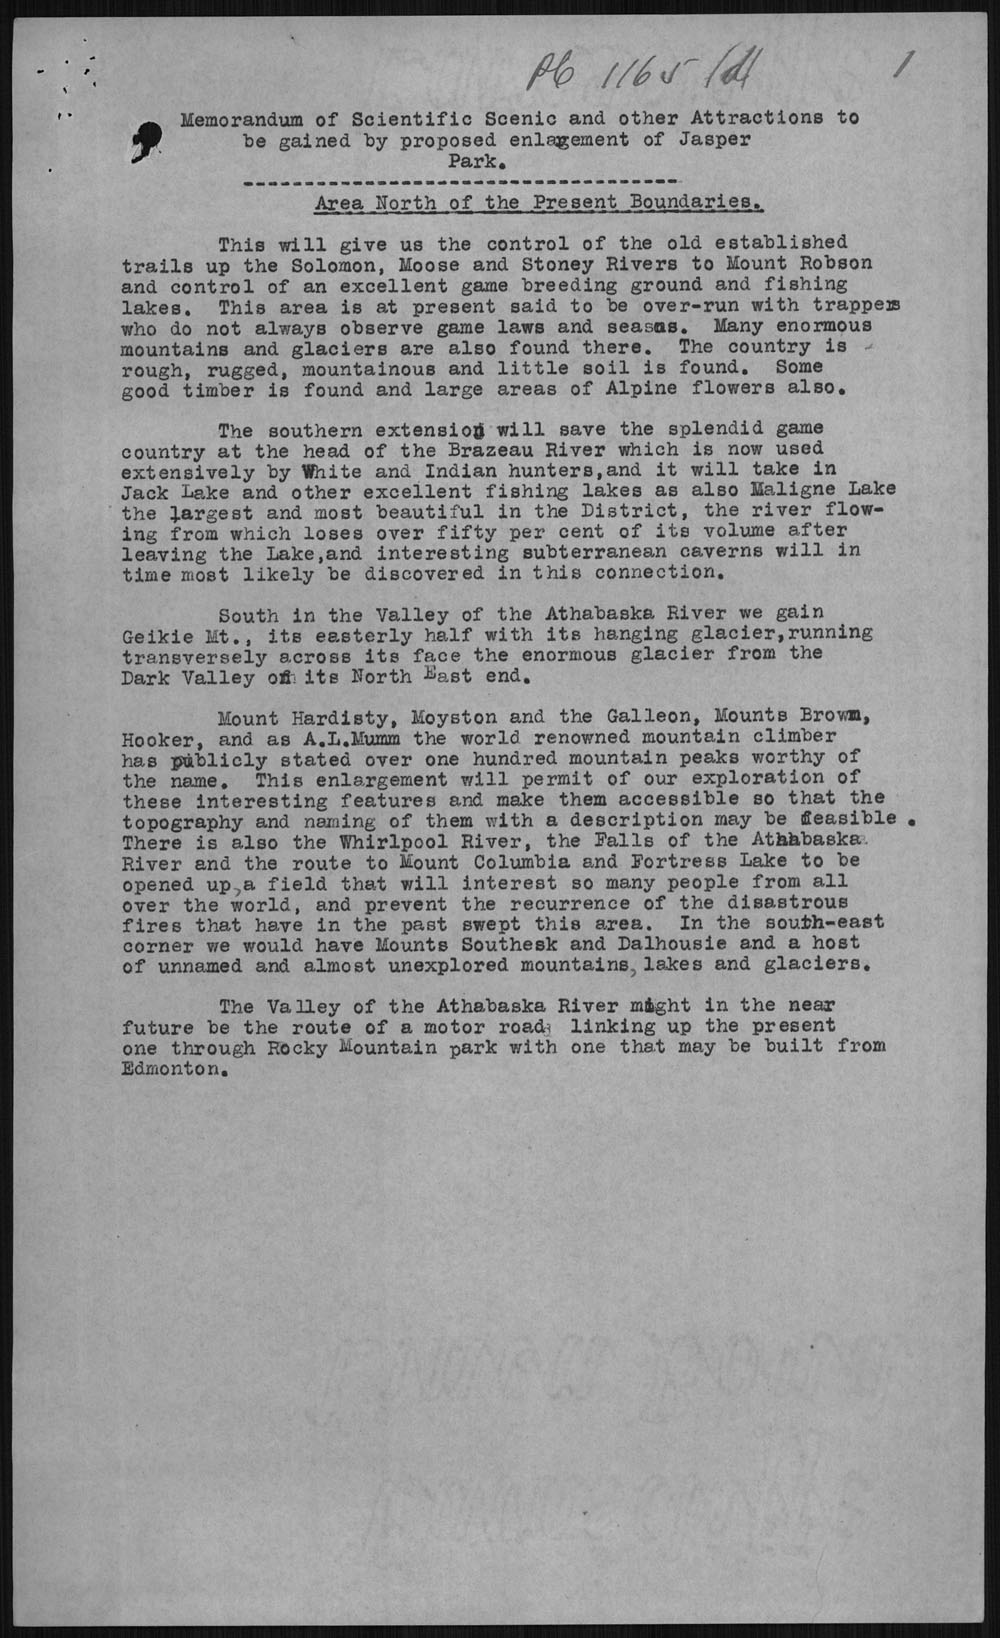 Digitized page of Orders in Council for Image No.: e010877251-v8